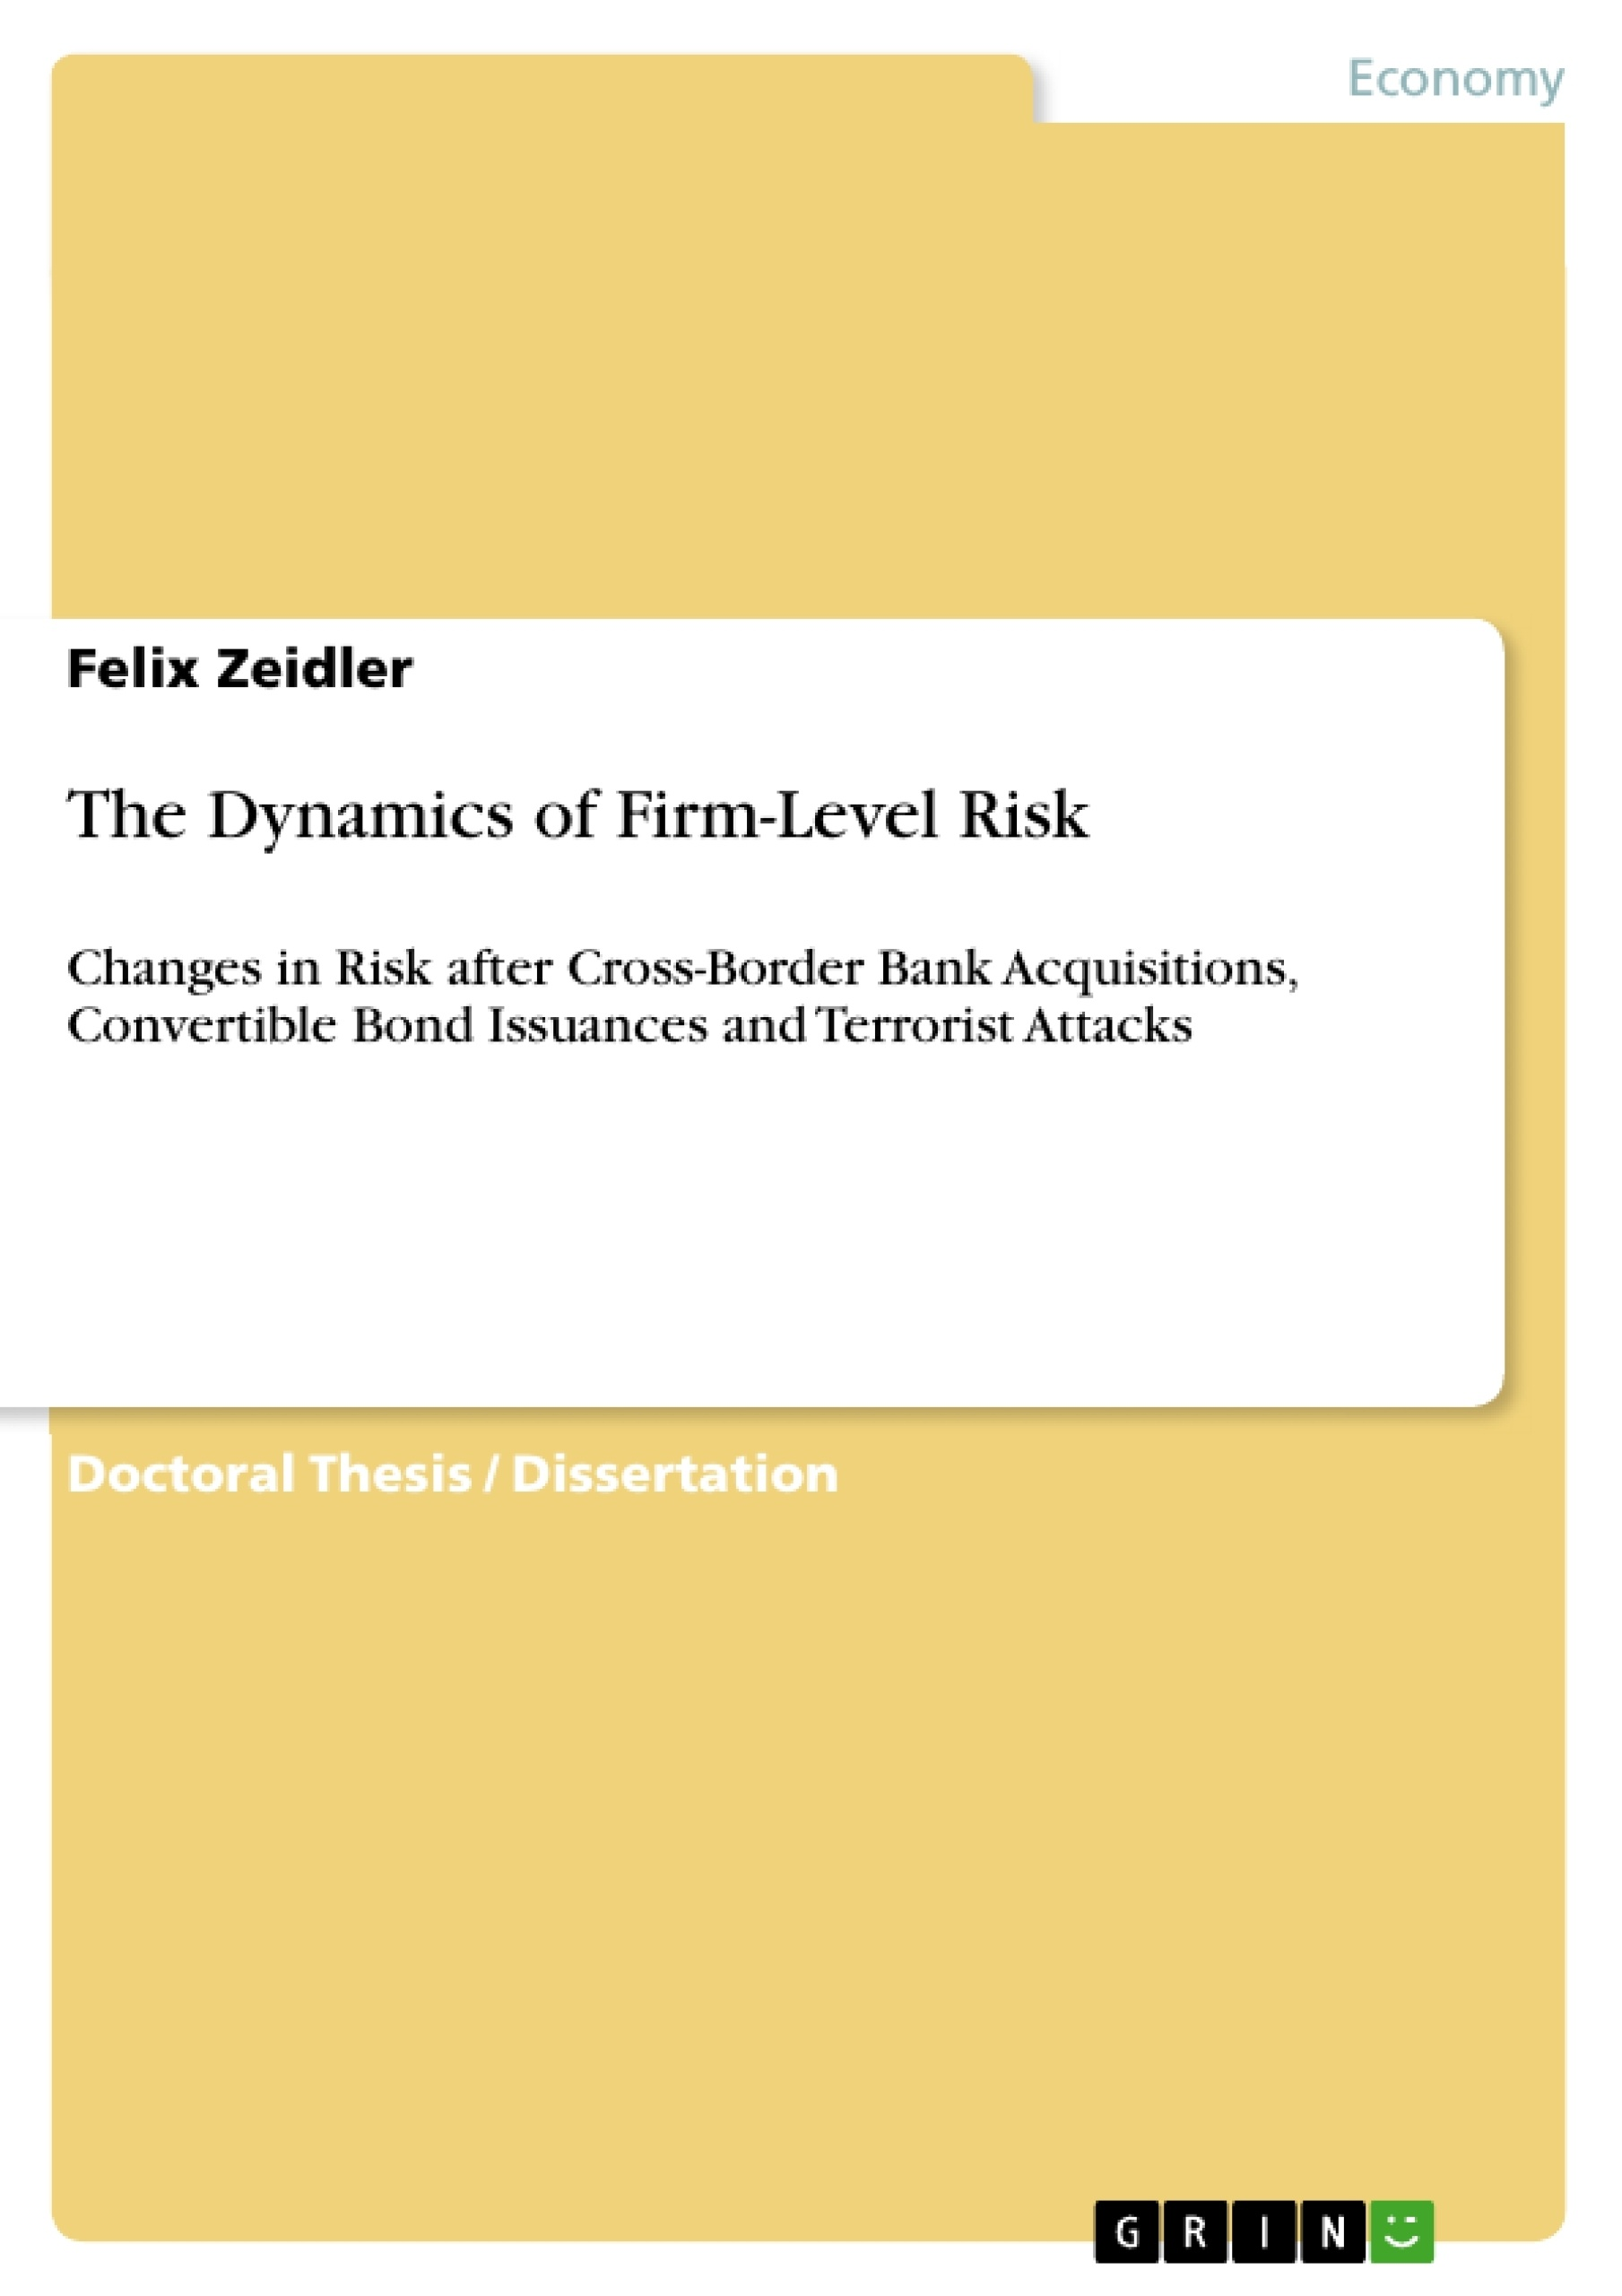 Title: The Dynamics of Firm-Level Risk